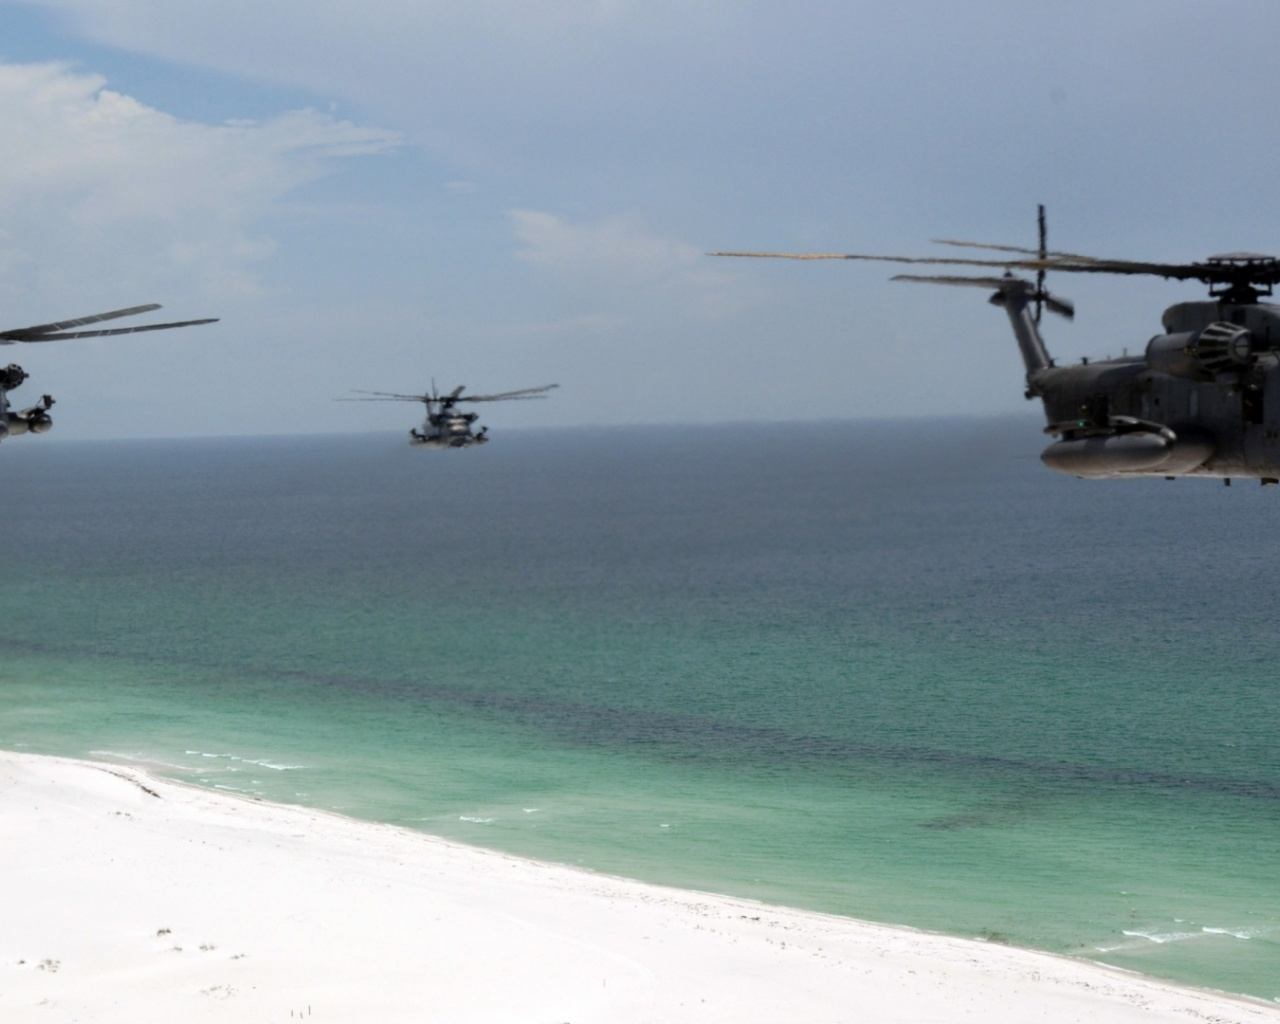 1280x1024 Helicopter, beach, choppers